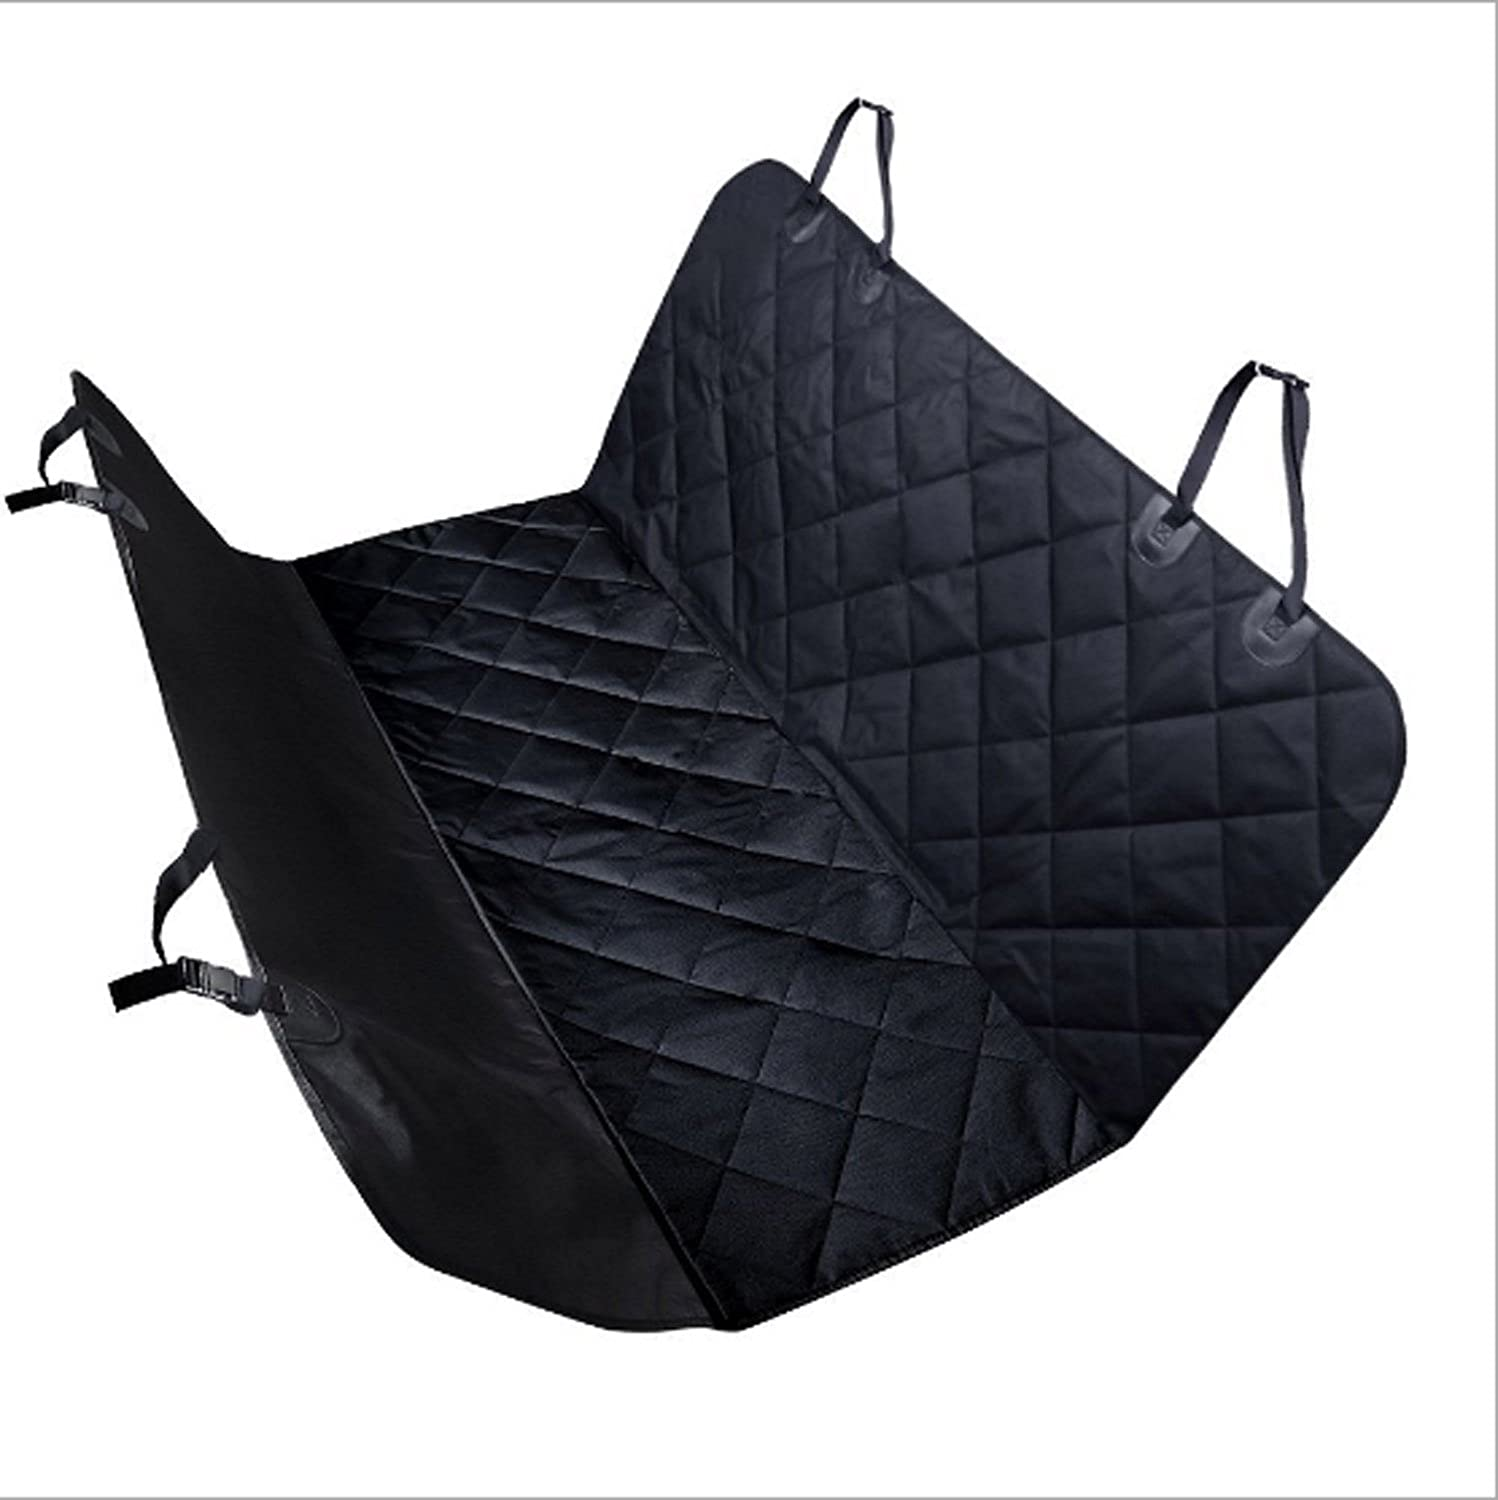 Black Manba Waterproof Nonslip Dog Seat Covers Travel Durable Back Seat Cover With Car Safety Seat Belt,Dog Car Seat Cover With Extra Side Flaps Scratchproof Abrasion Resistance And Hammock Congreeni